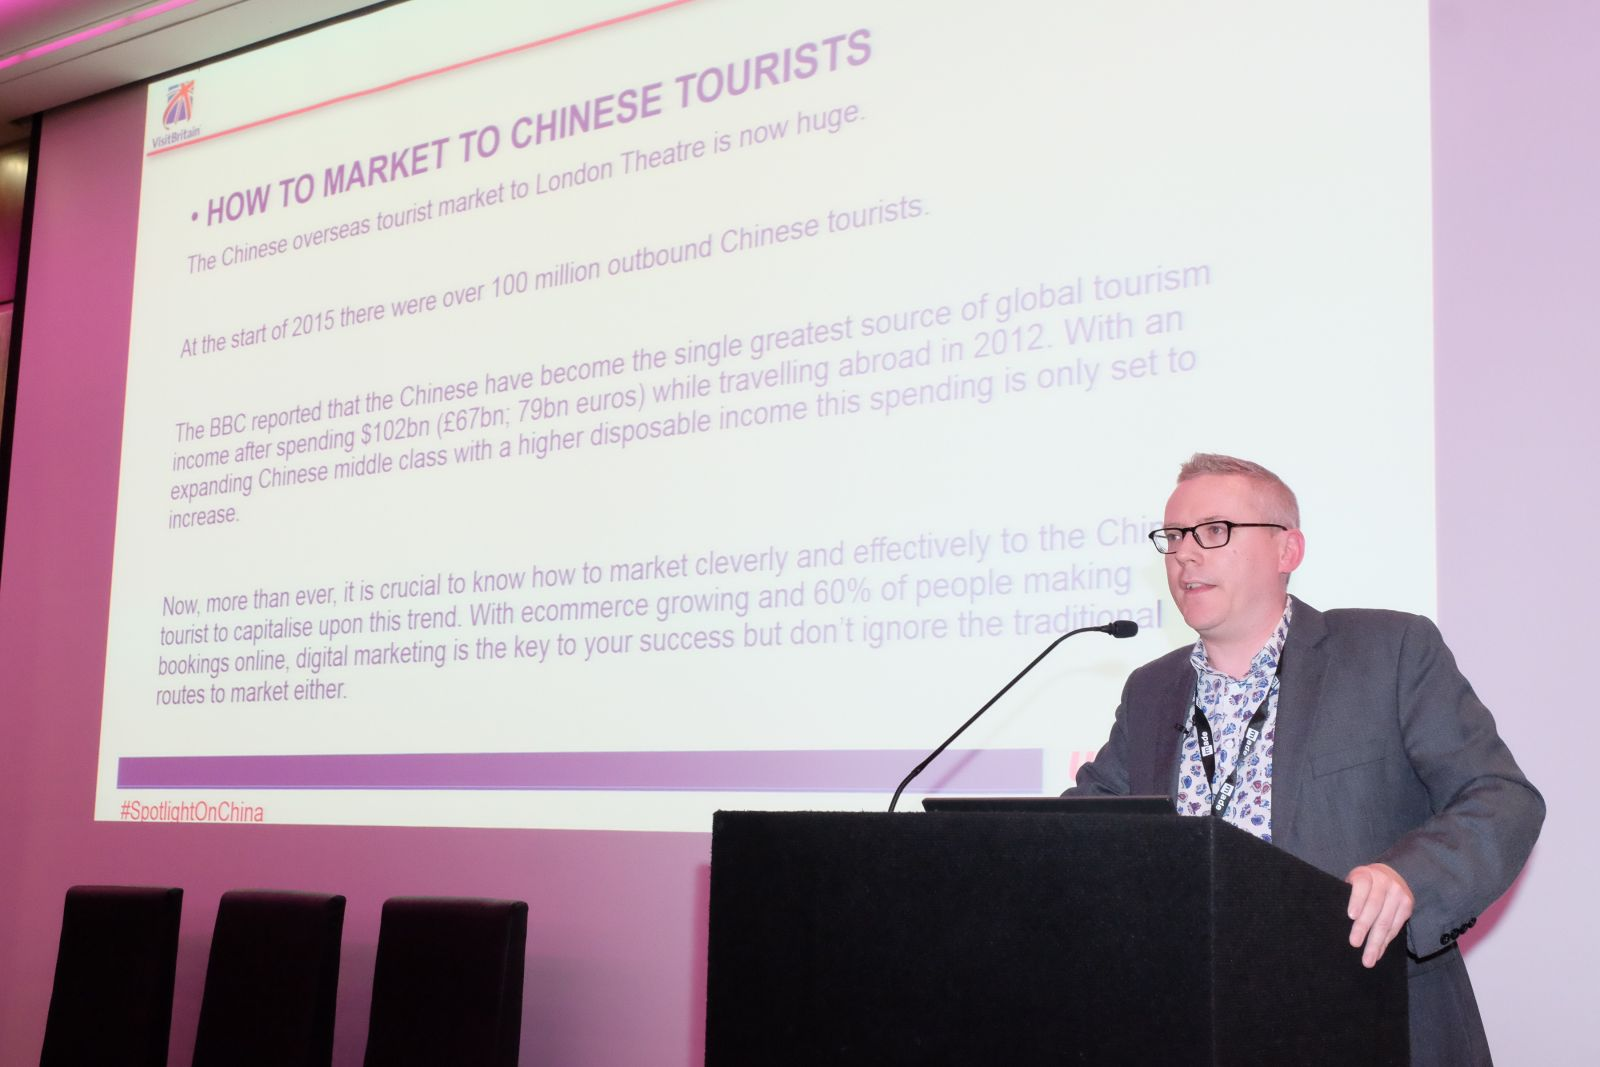 UKinbound: SpotLight on China